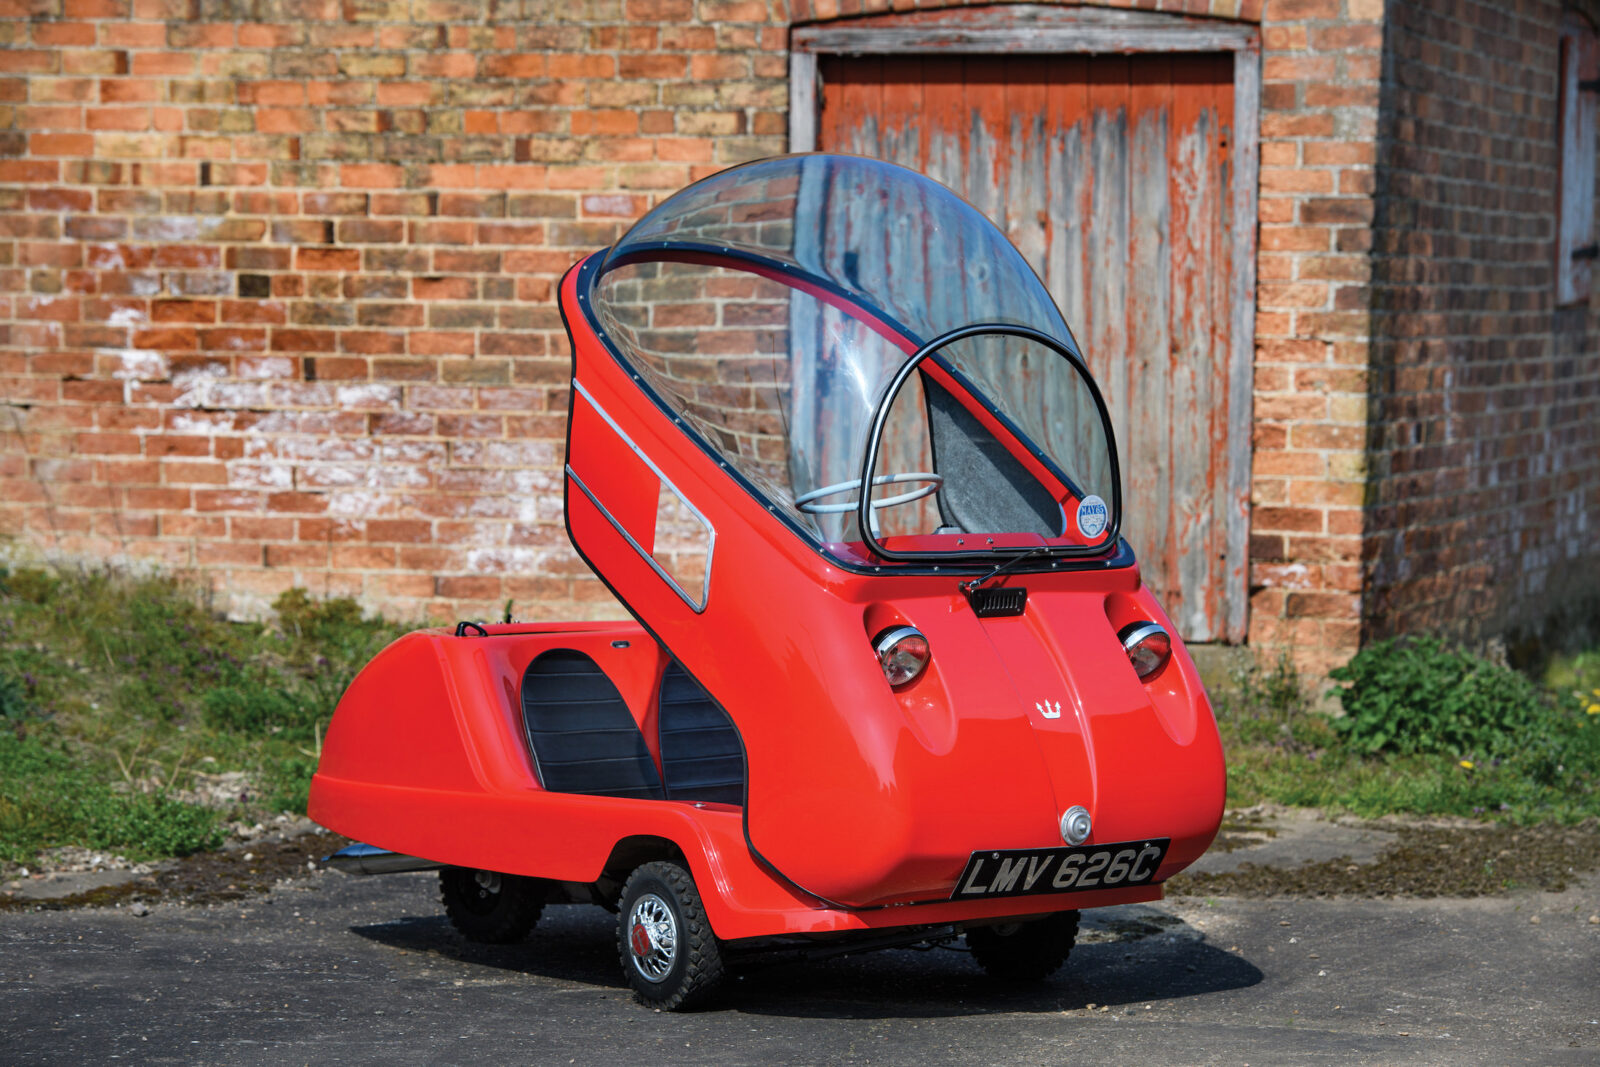 Peel Trident Was The World's Smallest Car - It's Now Worth A Cool $100,000 USD